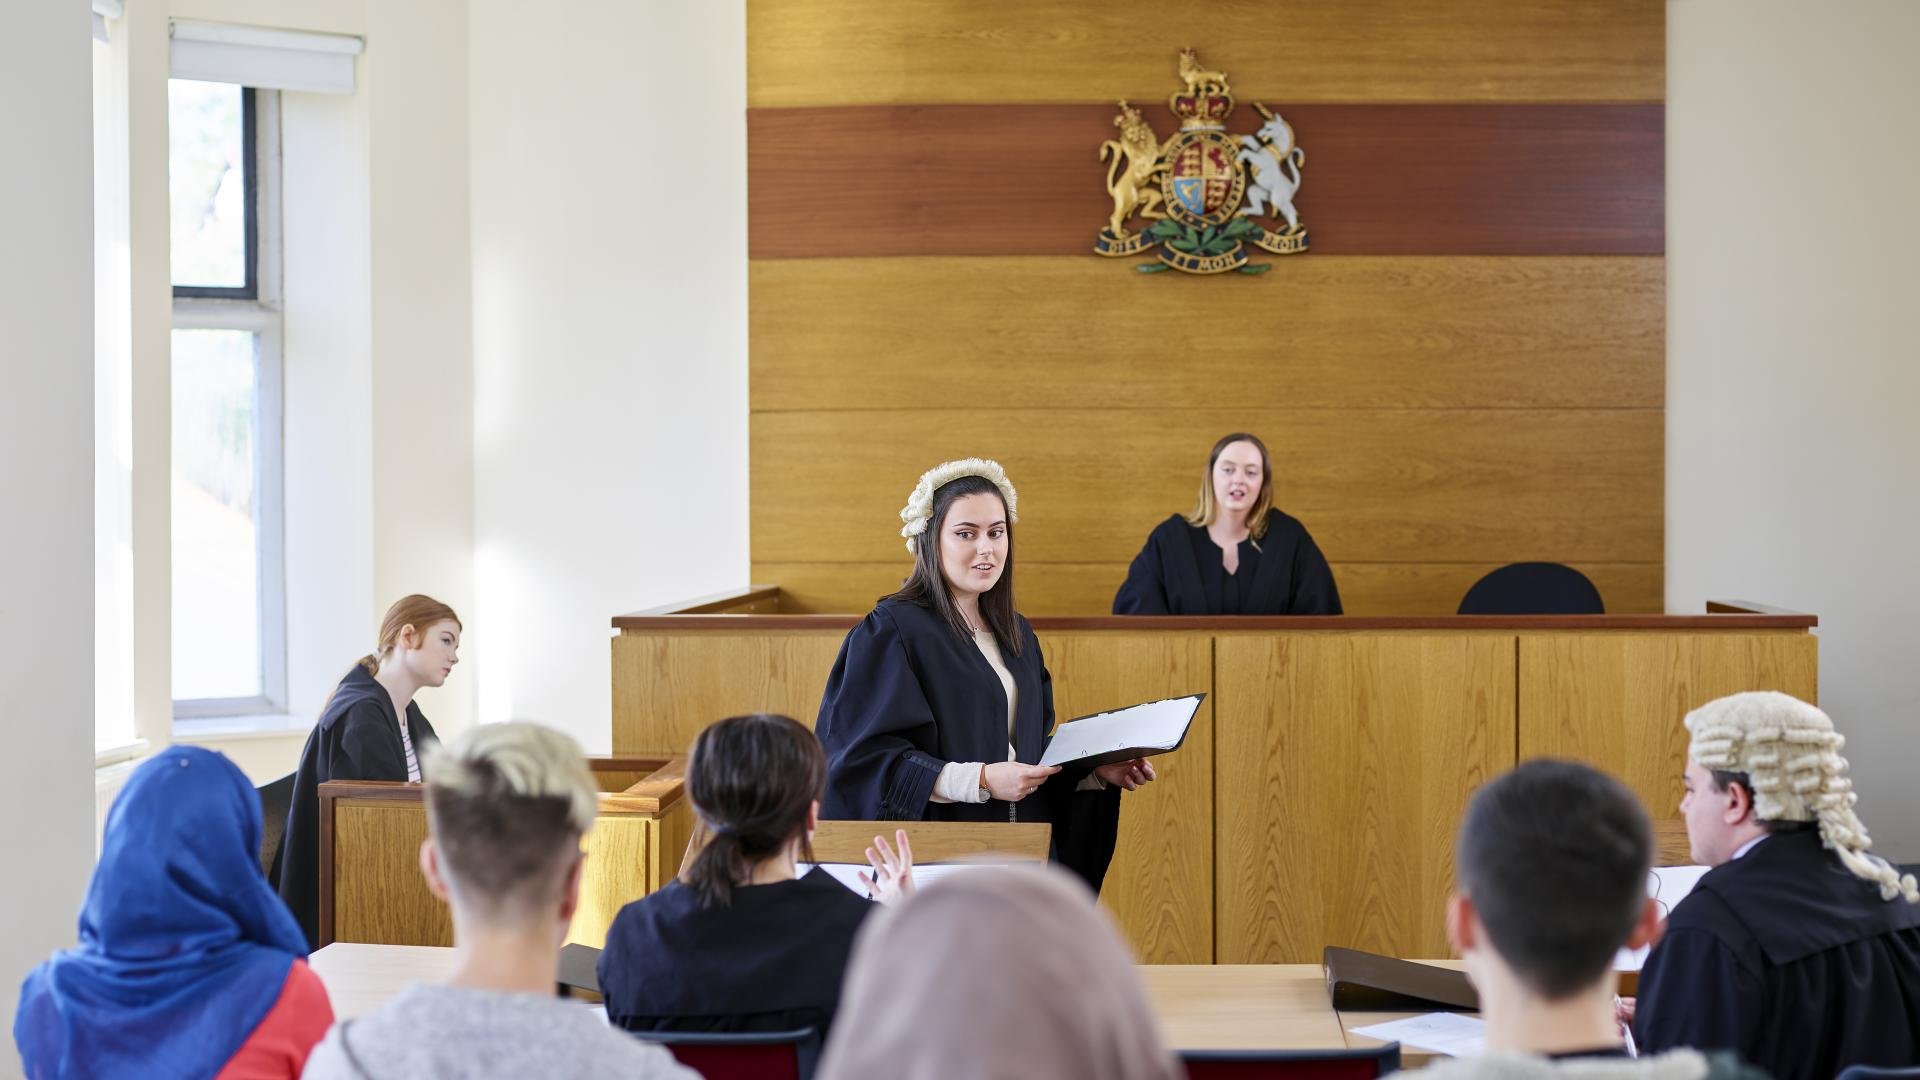 Students mooting in the University mock court room